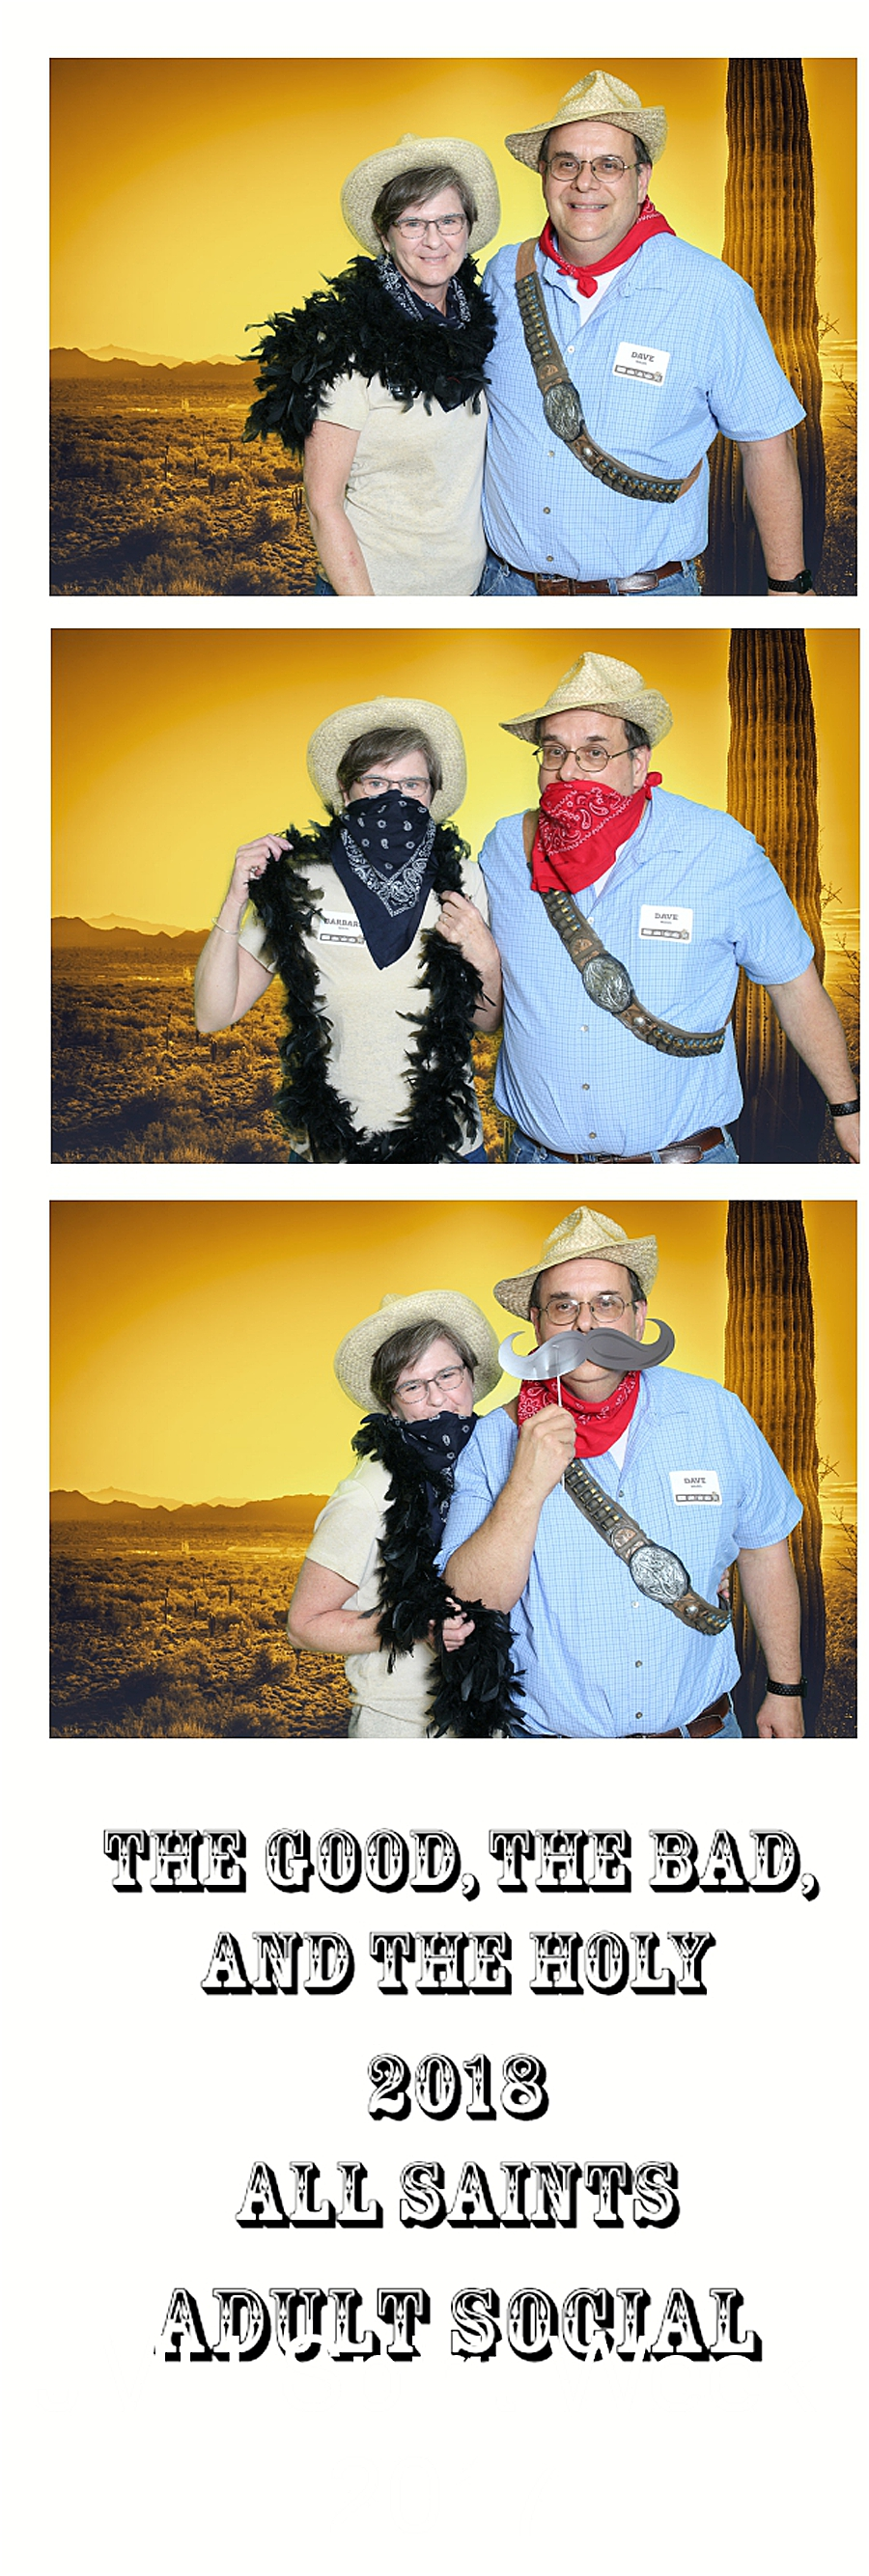 Knoxville Photo Booth_1319.jpg